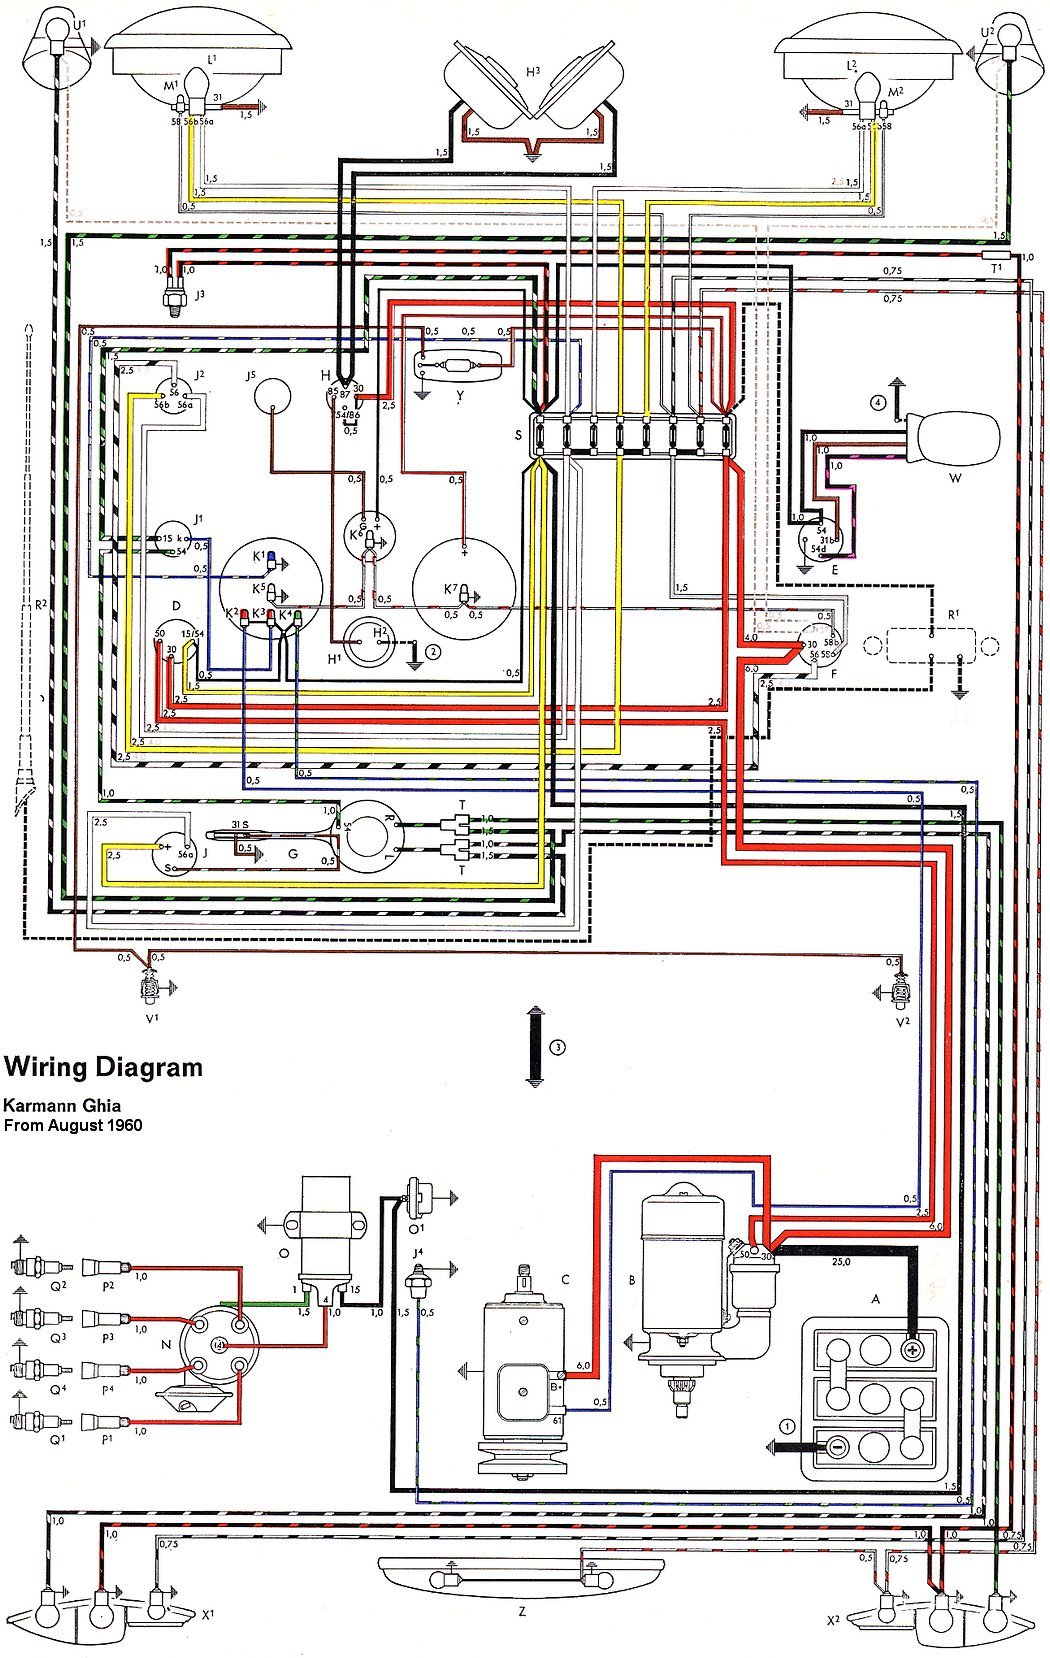 hight resolution of thesamba com karmann ghia wiring diagrams 1961 65